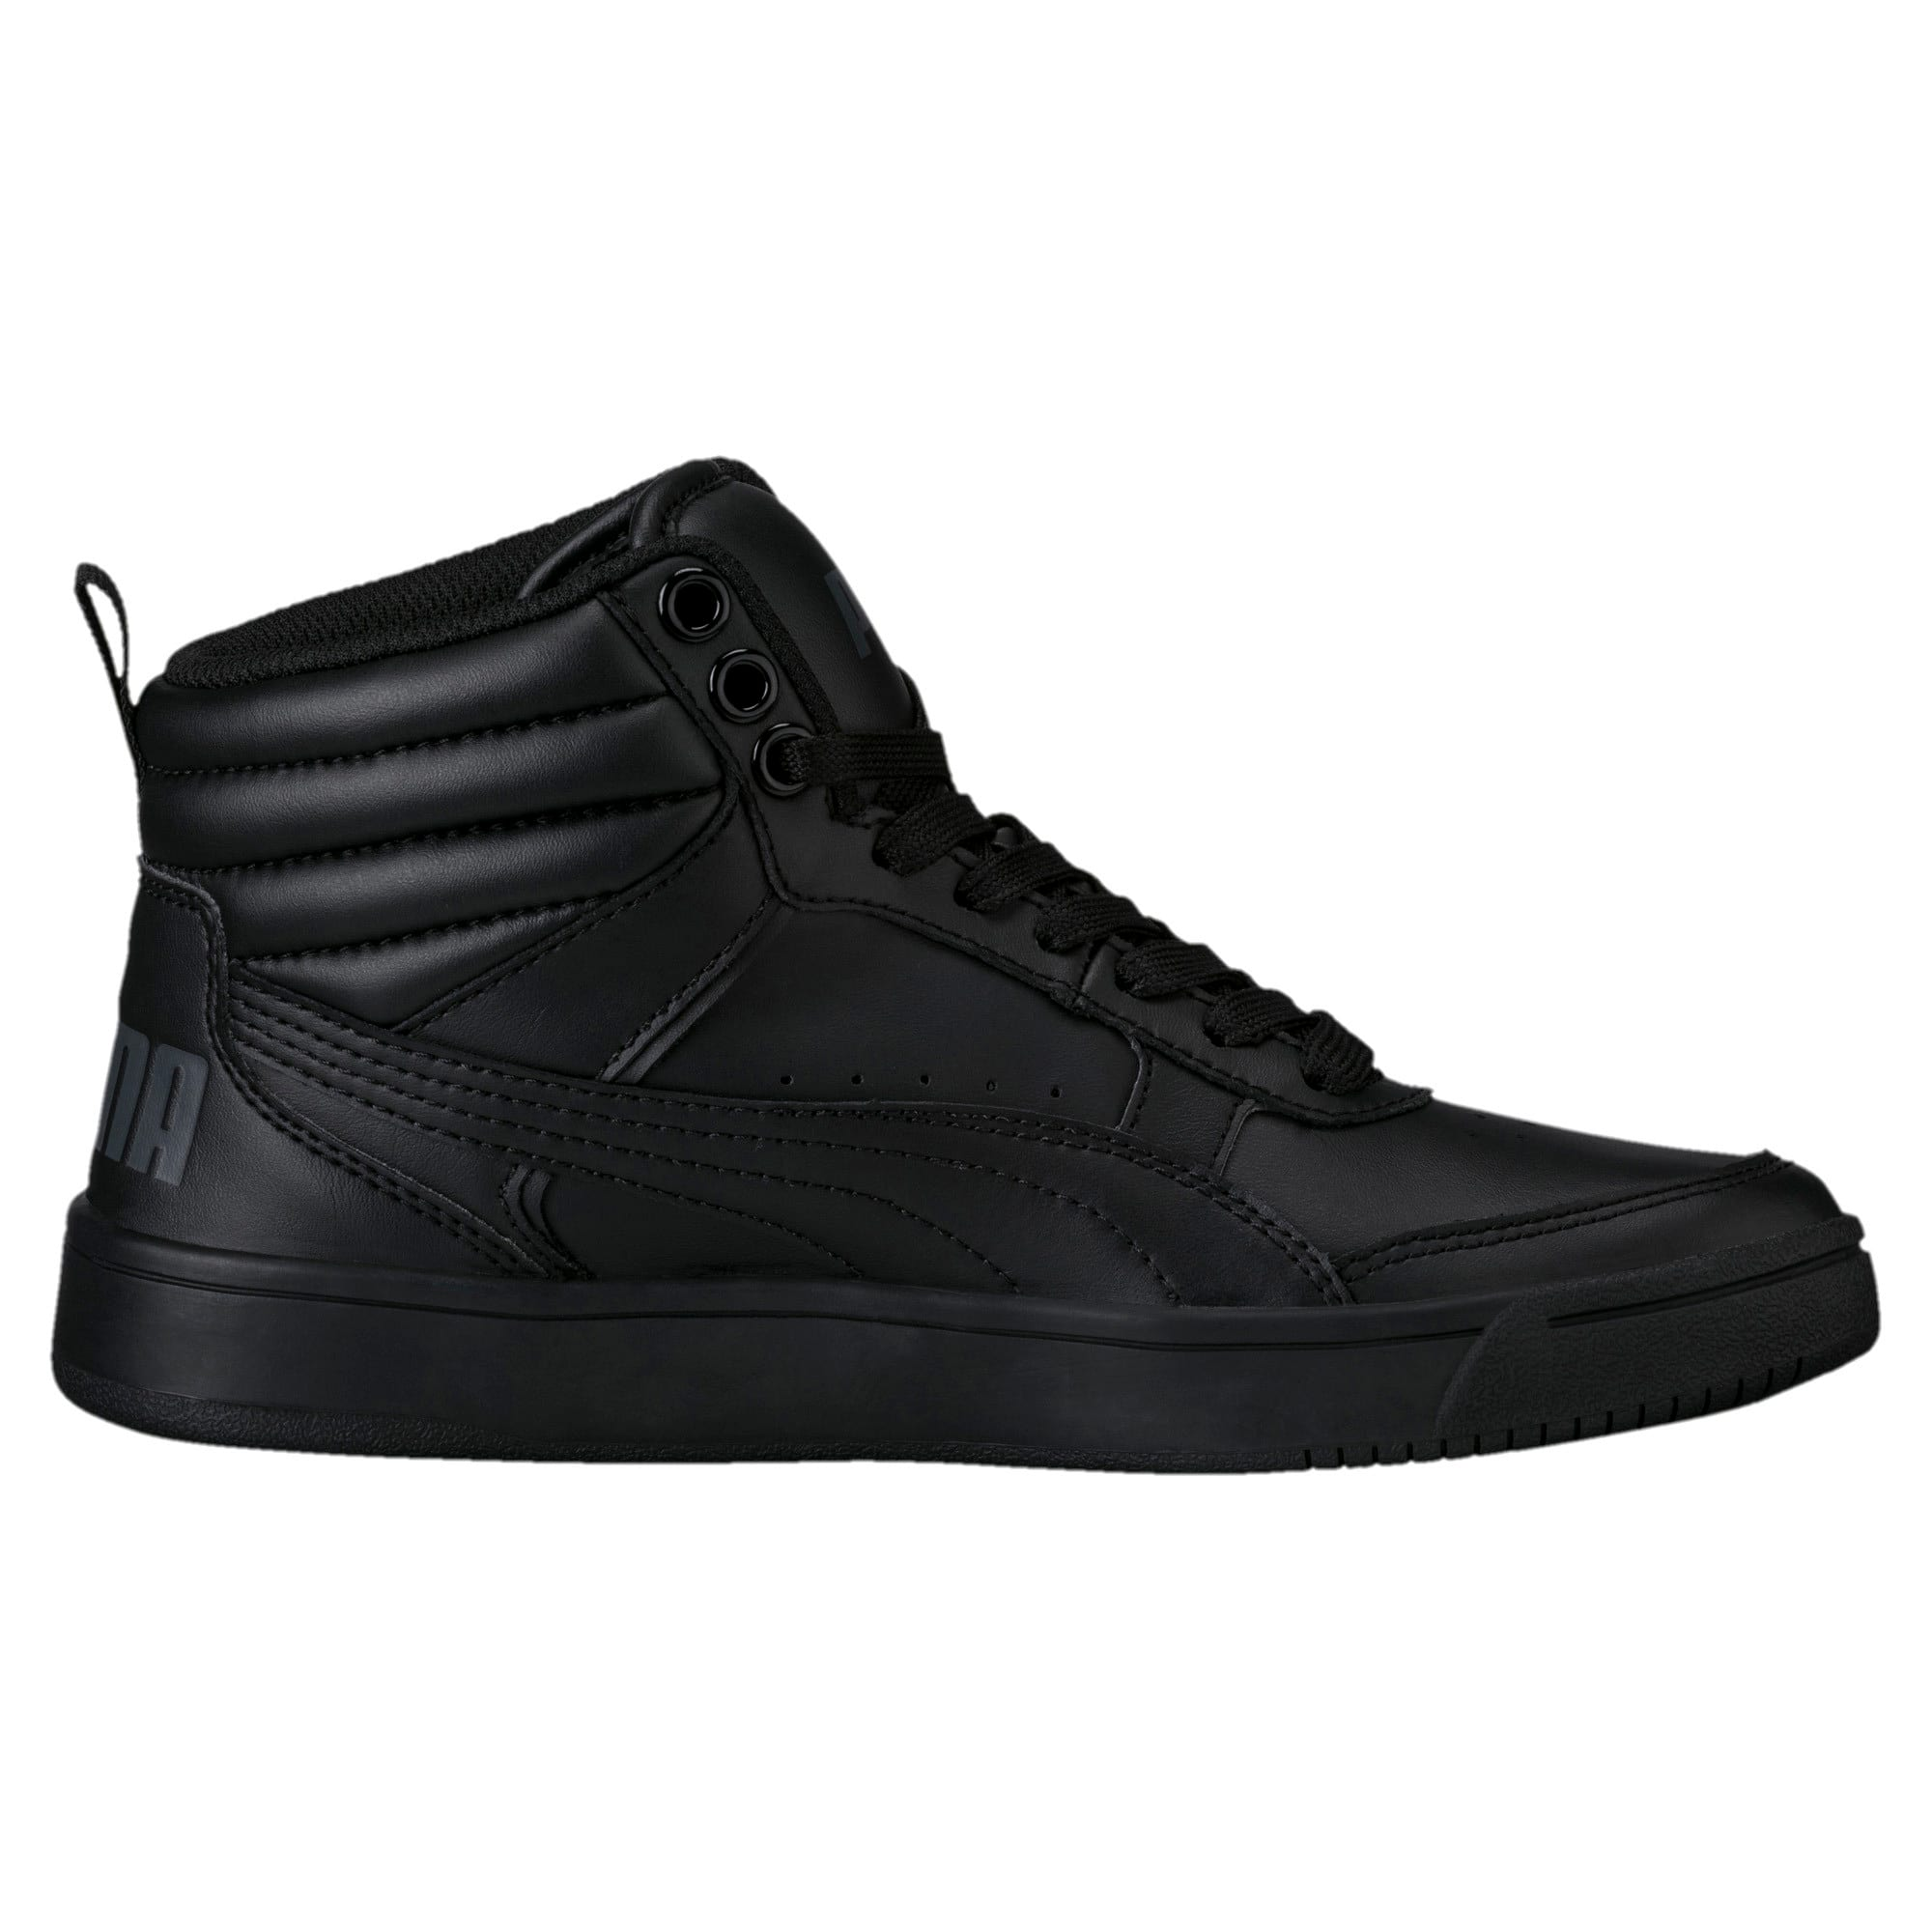 Thumbnail 4 of Rebound Street v2 Leather Kids' High Tops, Puma Black-Puma Black, medium-IND